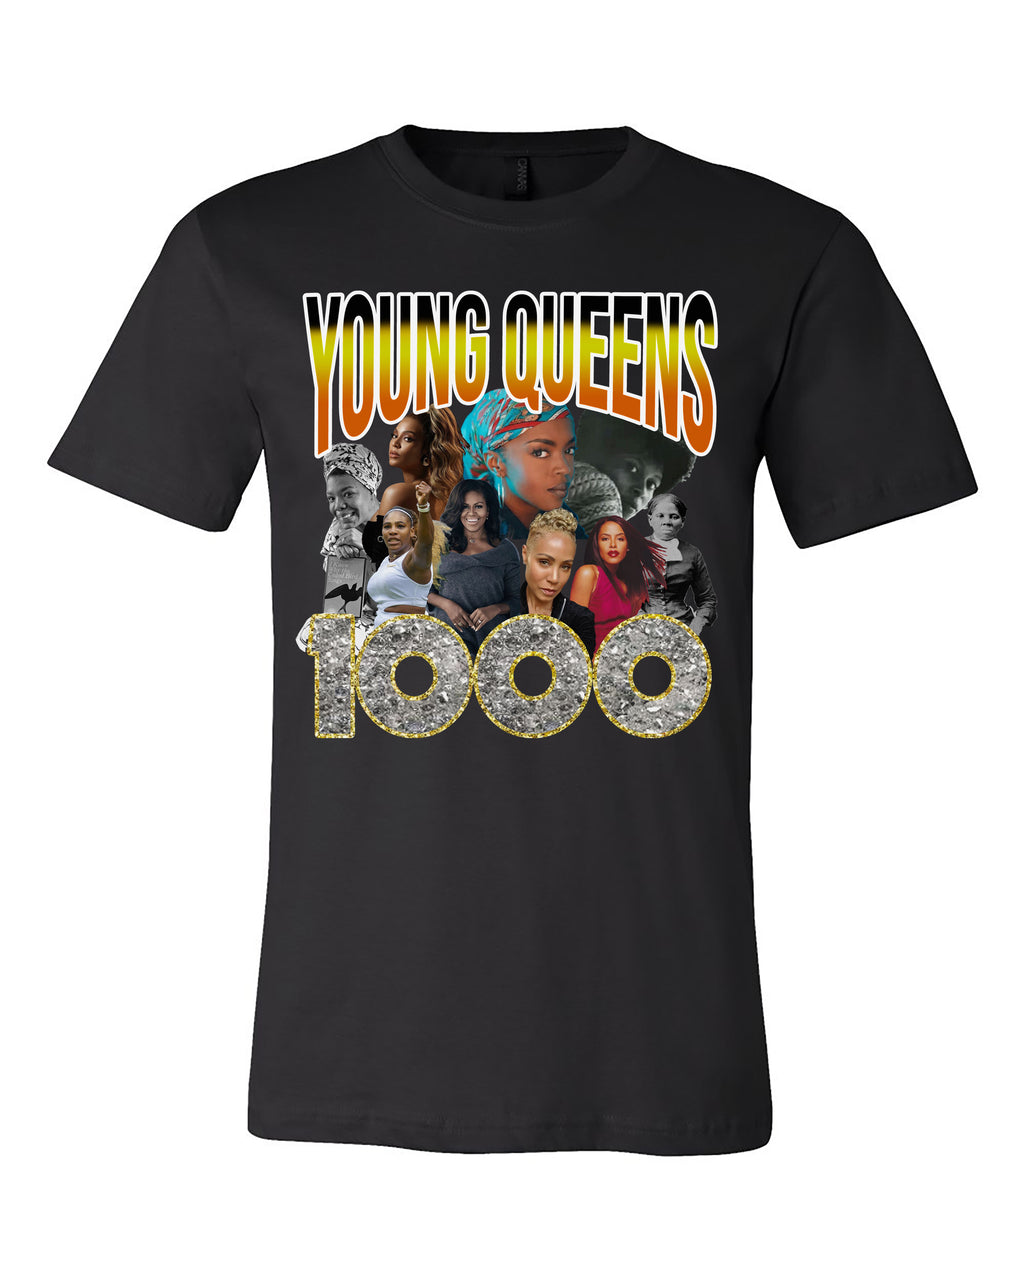 YOUNG QUEENS 1000 VINTAGE T-SHIRT